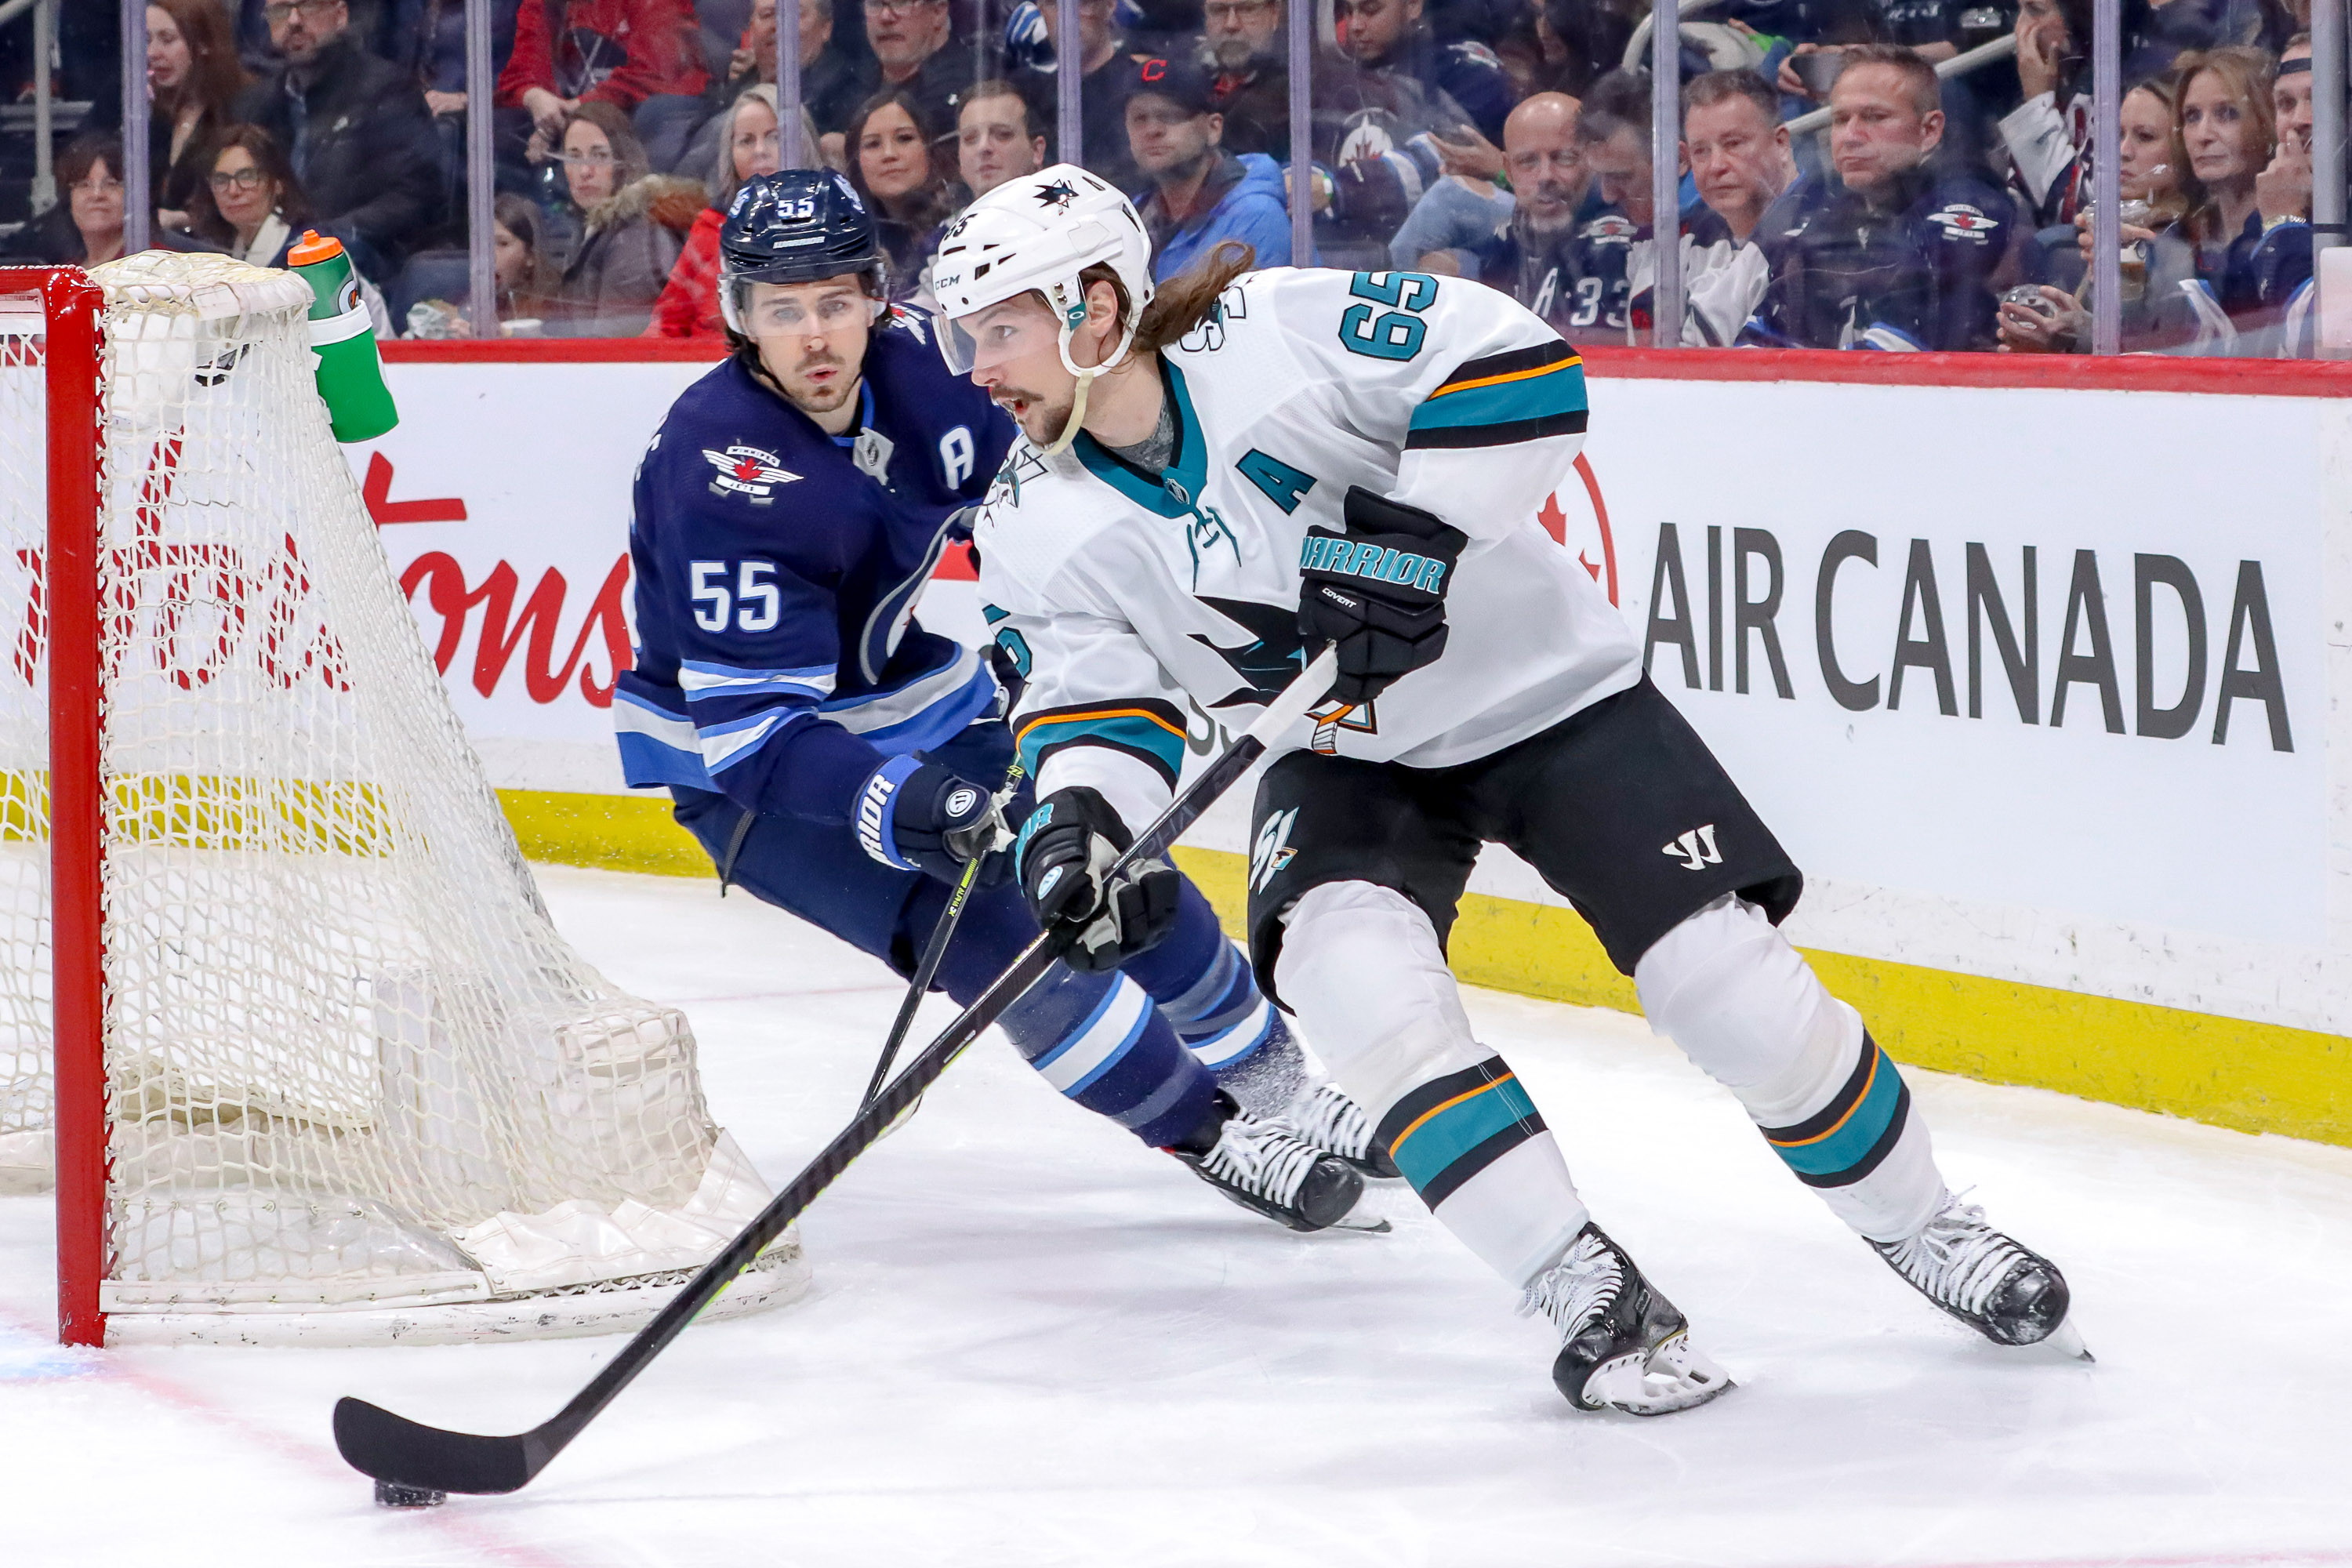 Erik Karlsson #65 of the San Jose Sharks plays the puck around the net as Mark Scheifele #55 of the Winnipeg Jets gives chase during first period action at the Bell MTS Place on February 14, 2020 in Winnipeg, Manitoba, Canada.